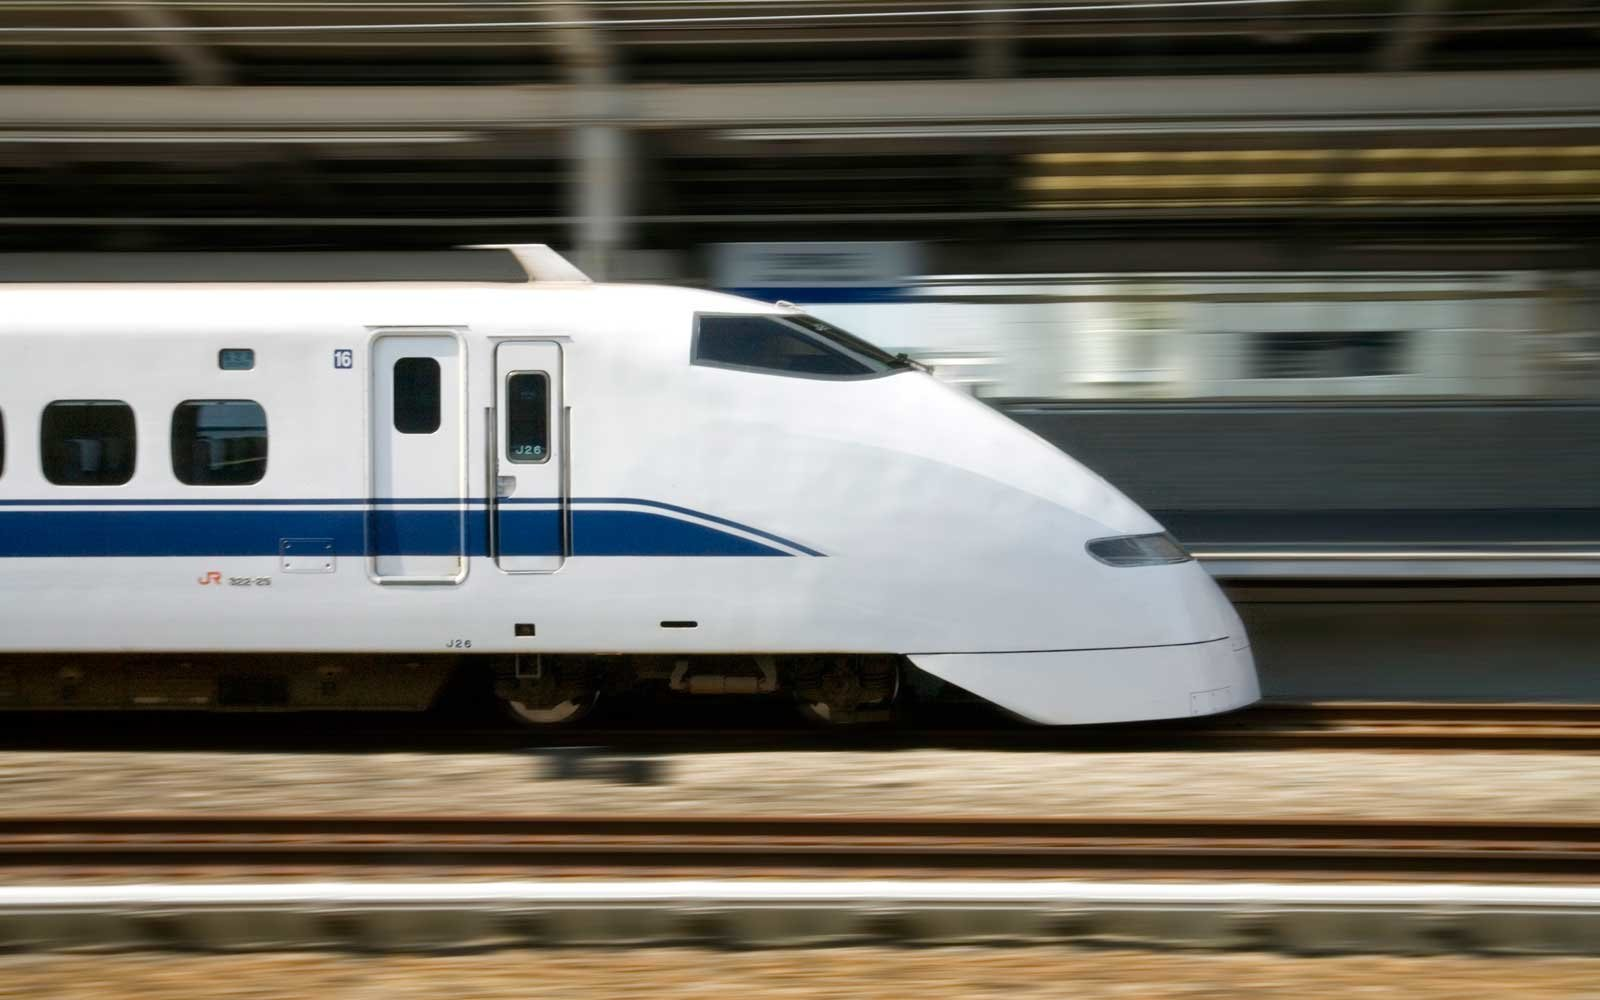 Japanese Bullet Train, Akashi, Hyogo Prefecture, Japan, Panning